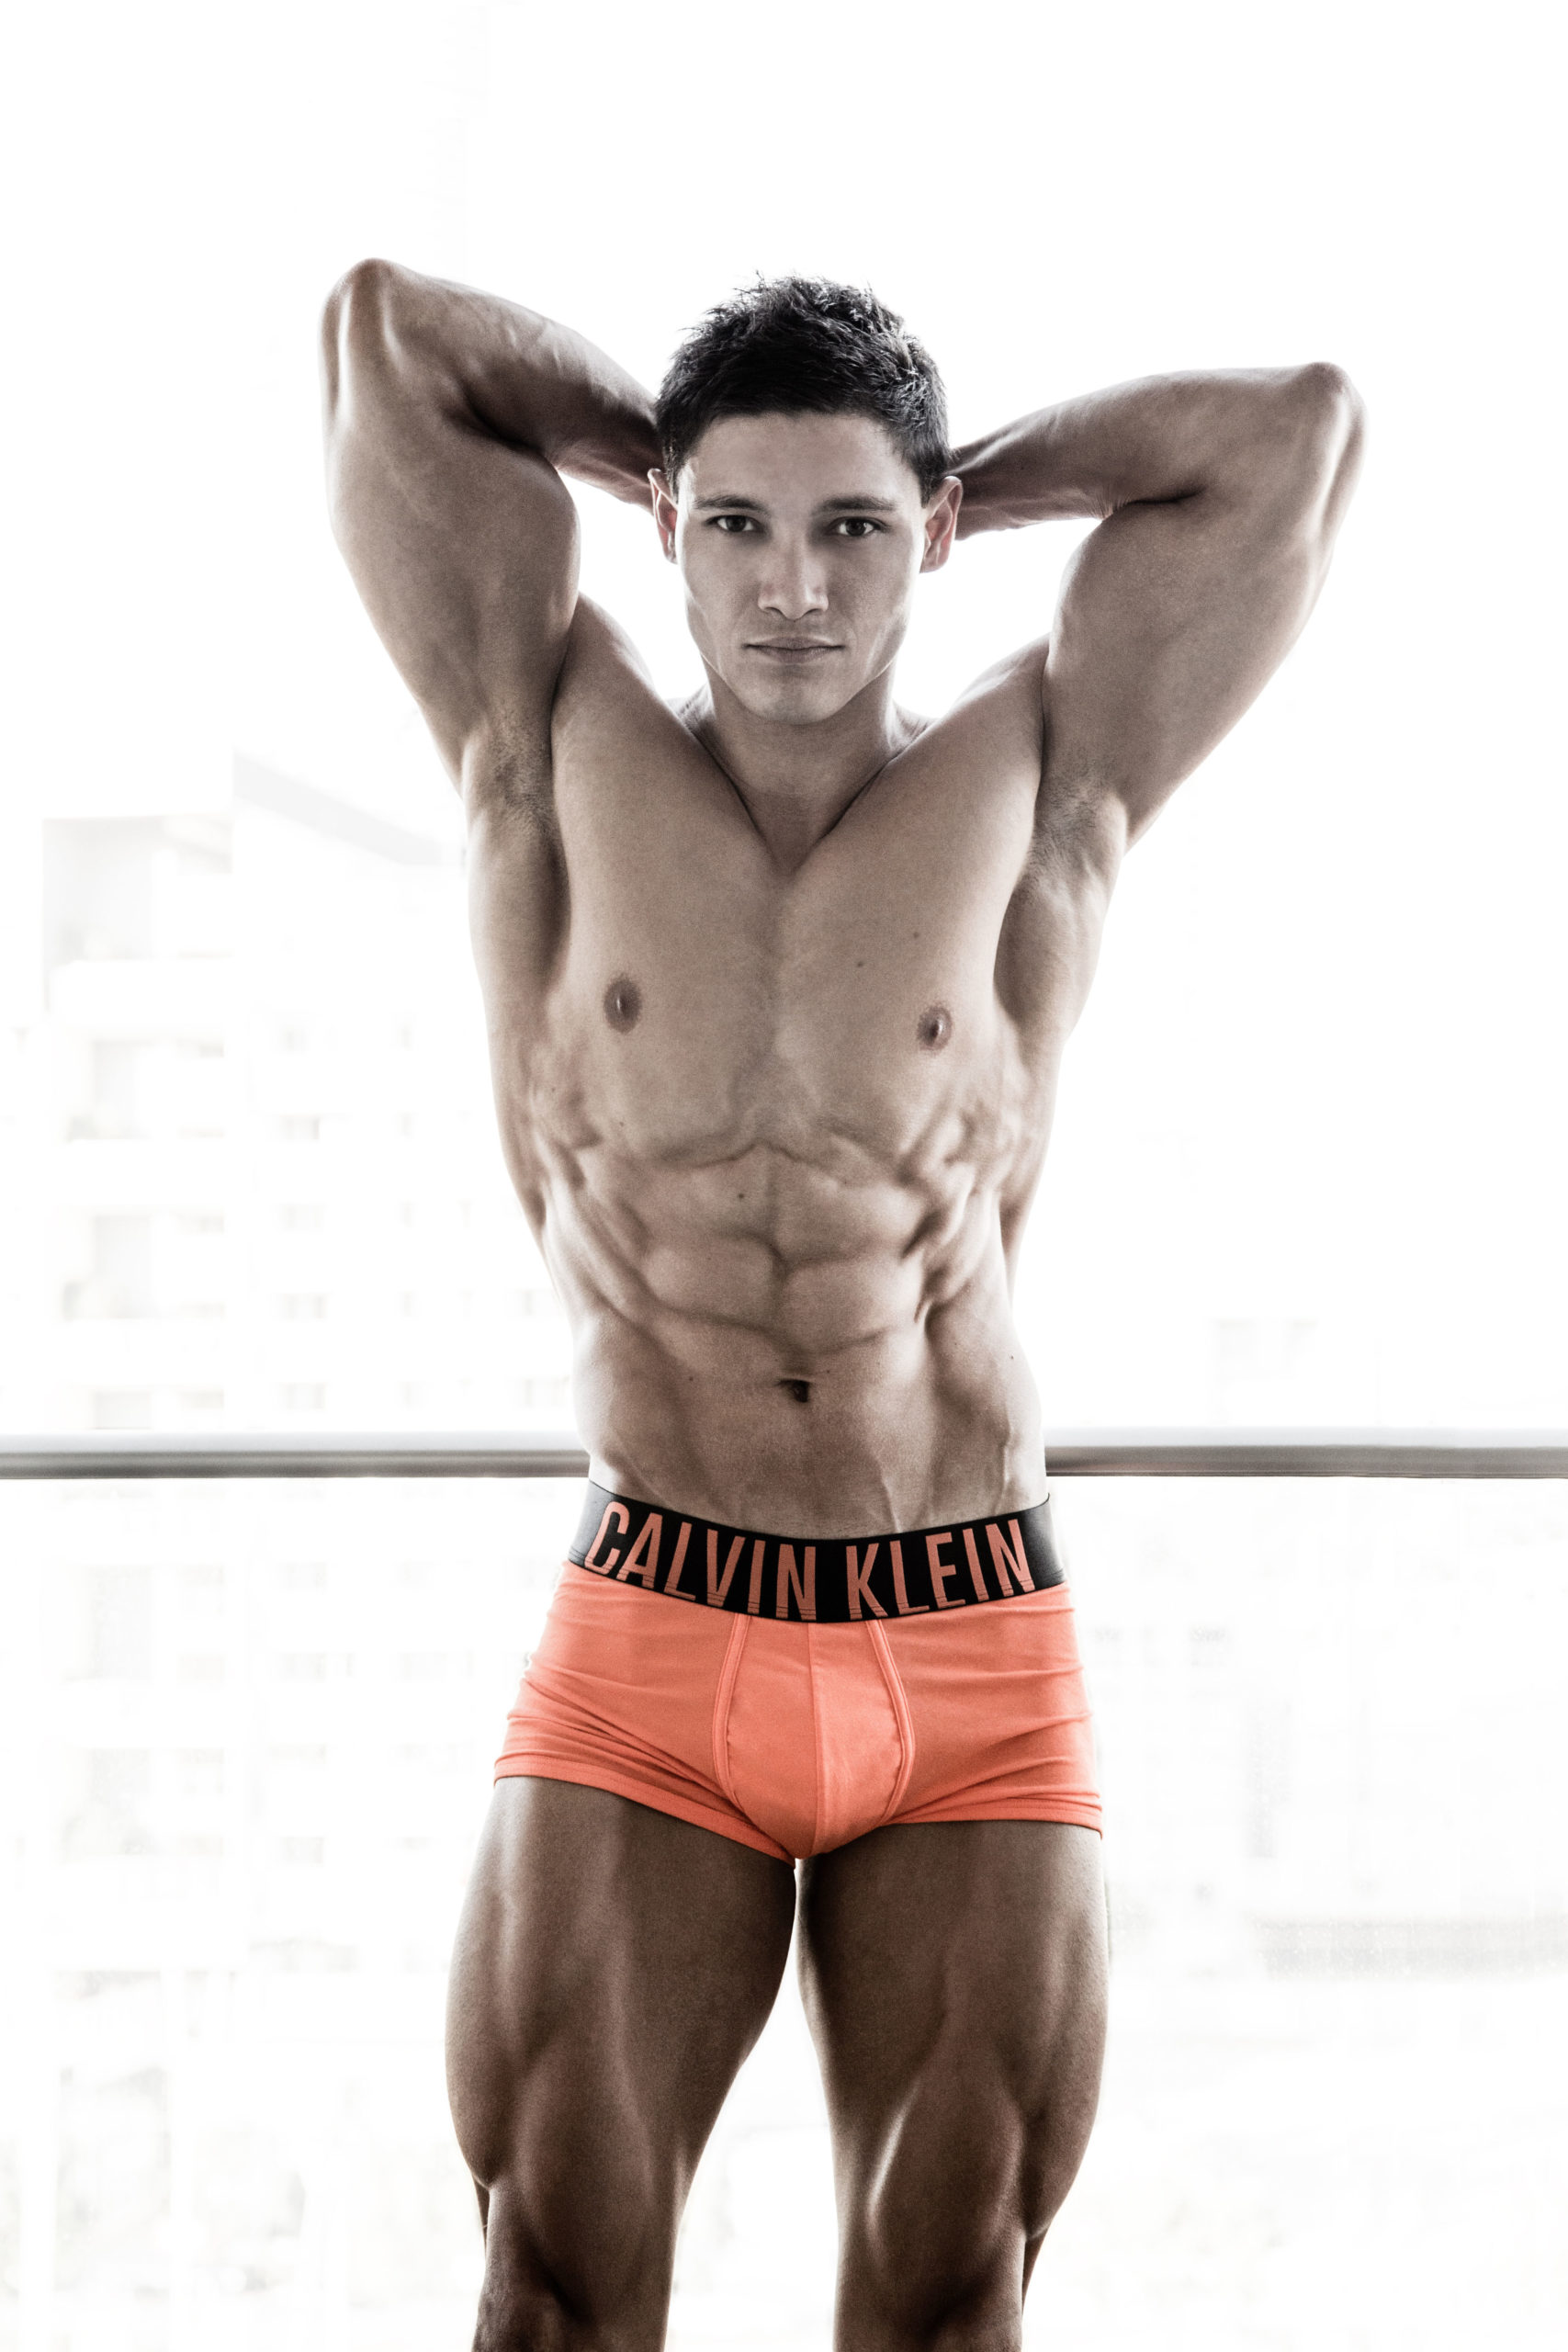 Andrew Mc flexing doing a most muscular abdominal pose